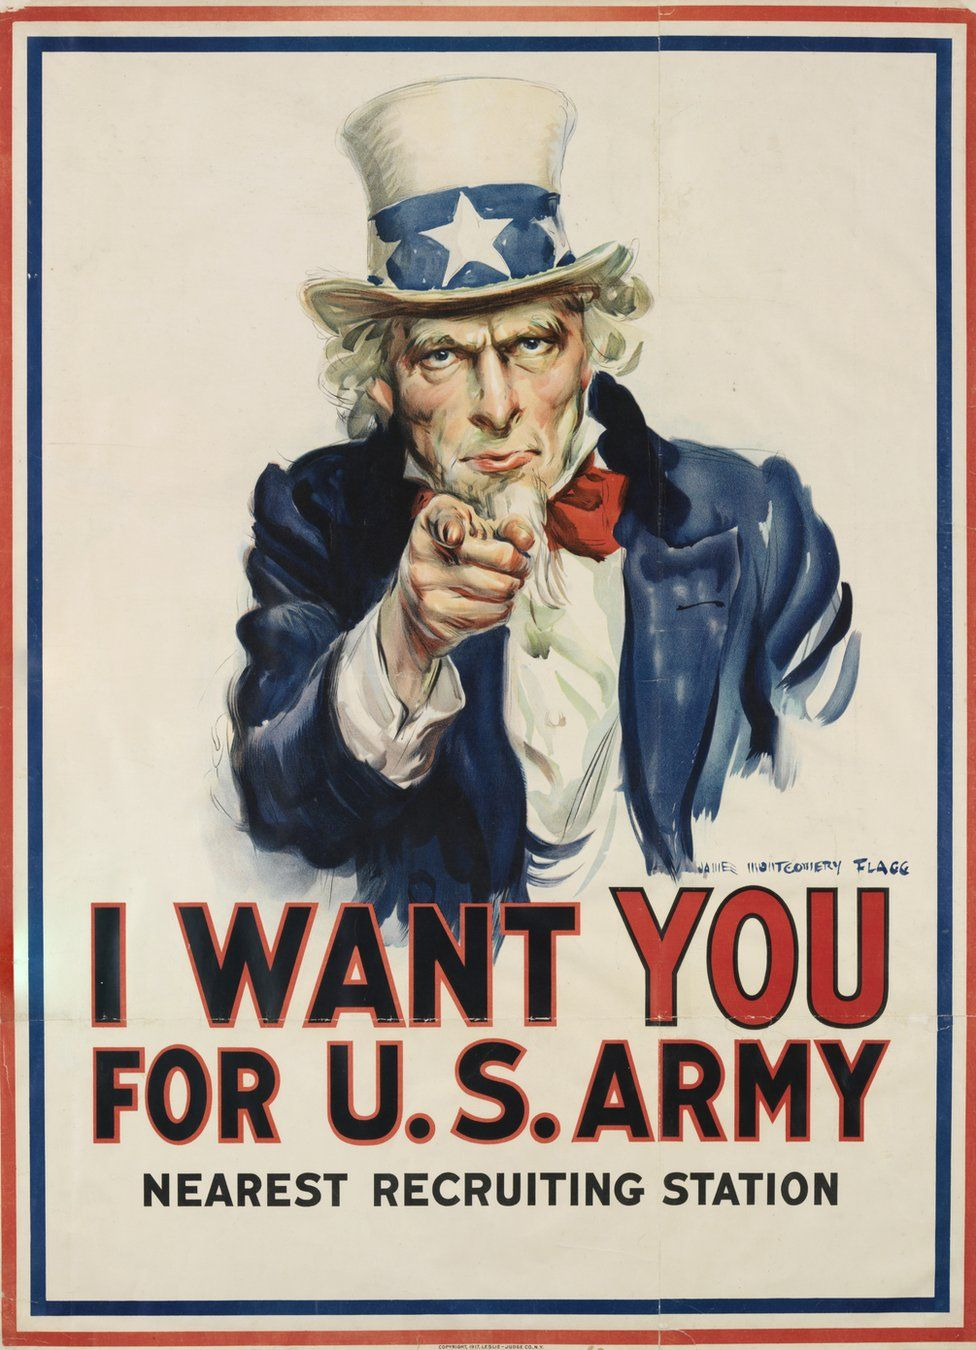 I Want You For US Army recruitment poster